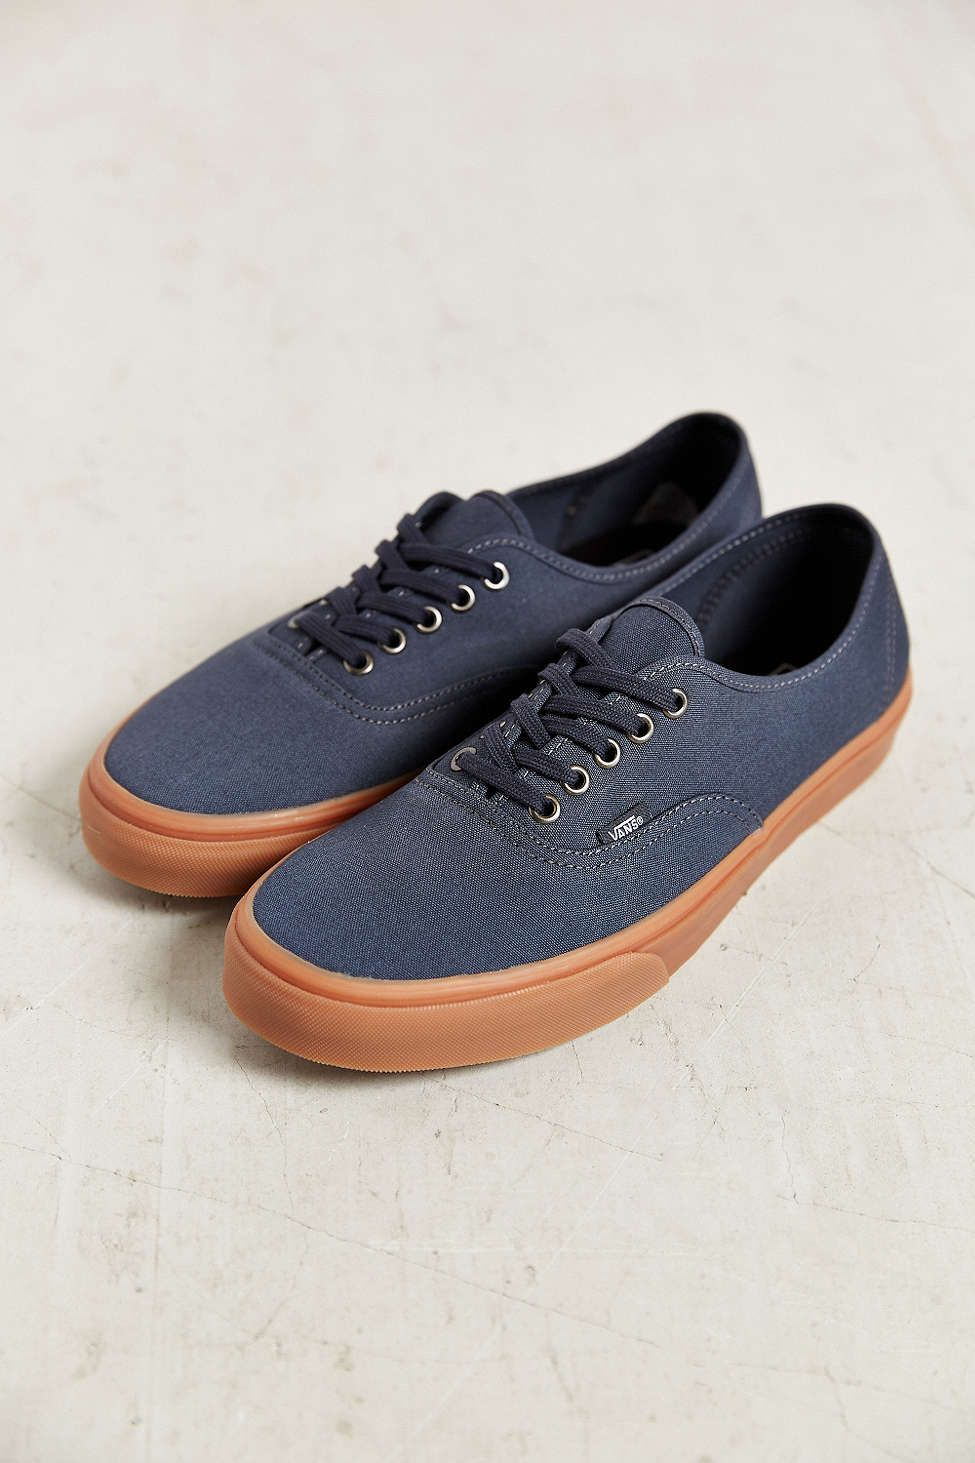 ef1cad8a96e Vans Authentic Gum-Sole Men s Sneaker Dark Blue Size 9.5  45 urban  outfitters